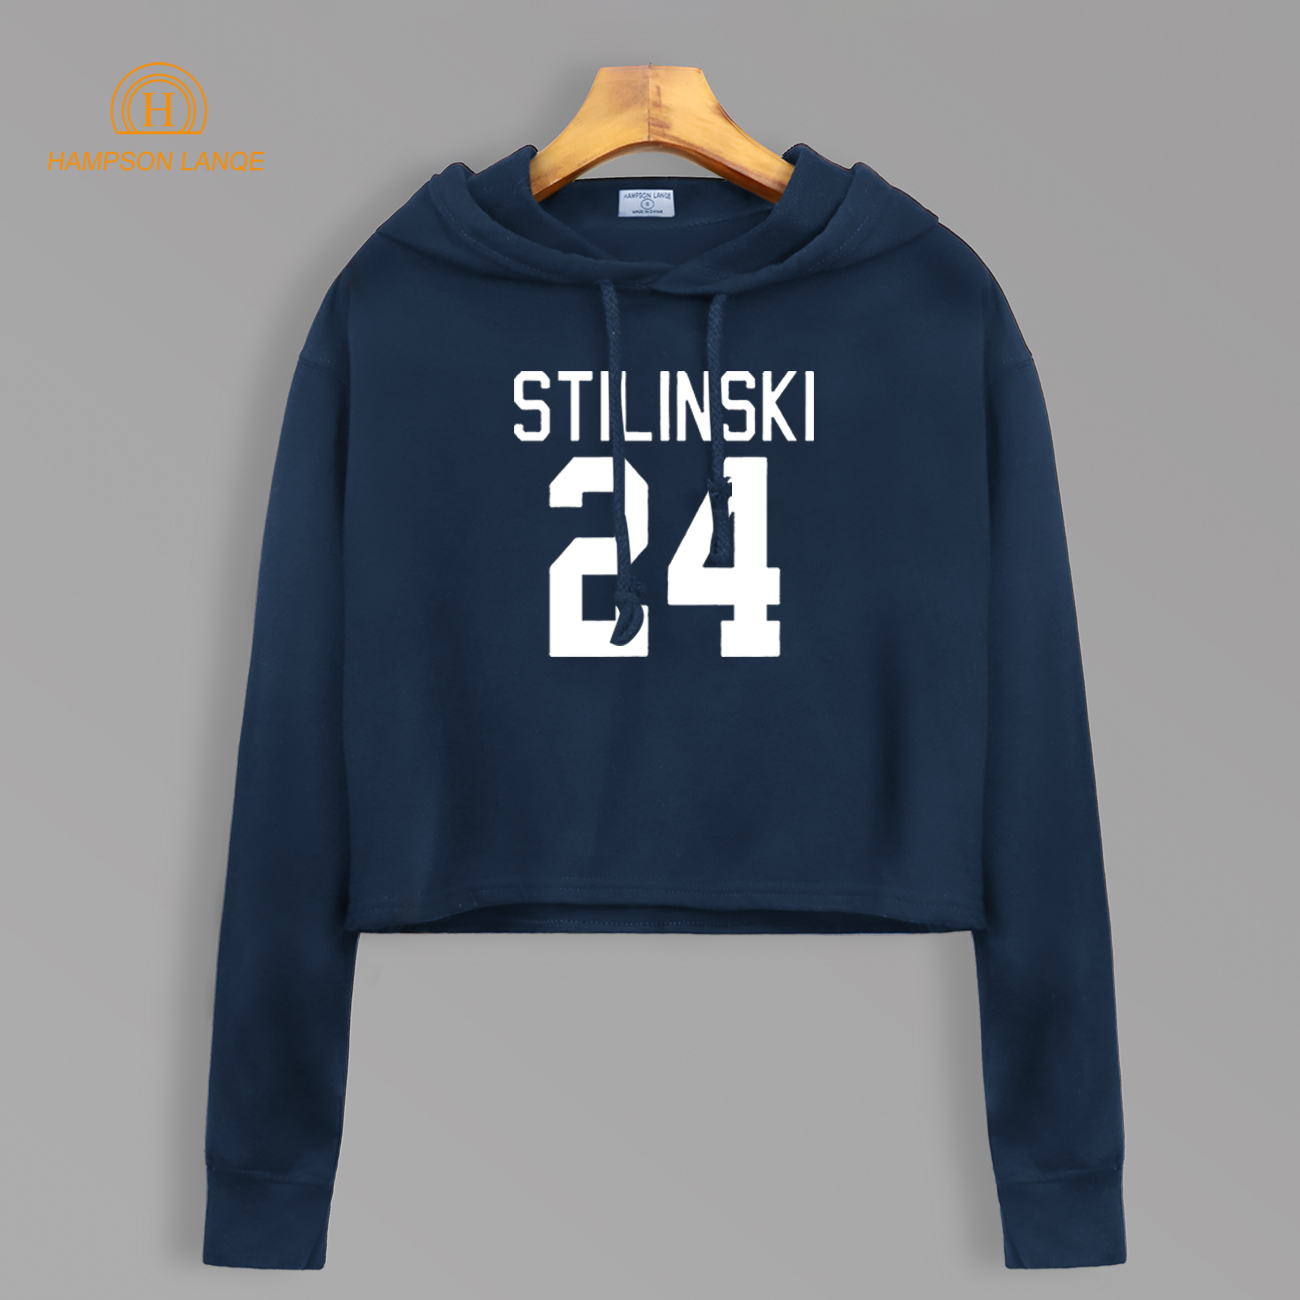 Teen Wolf Stilinski 24 Short Style Sweatshirt Autumn 2020 TV Show Women Kawaii Cotton Cropped Hoodie Sexy Pullovers For Fans